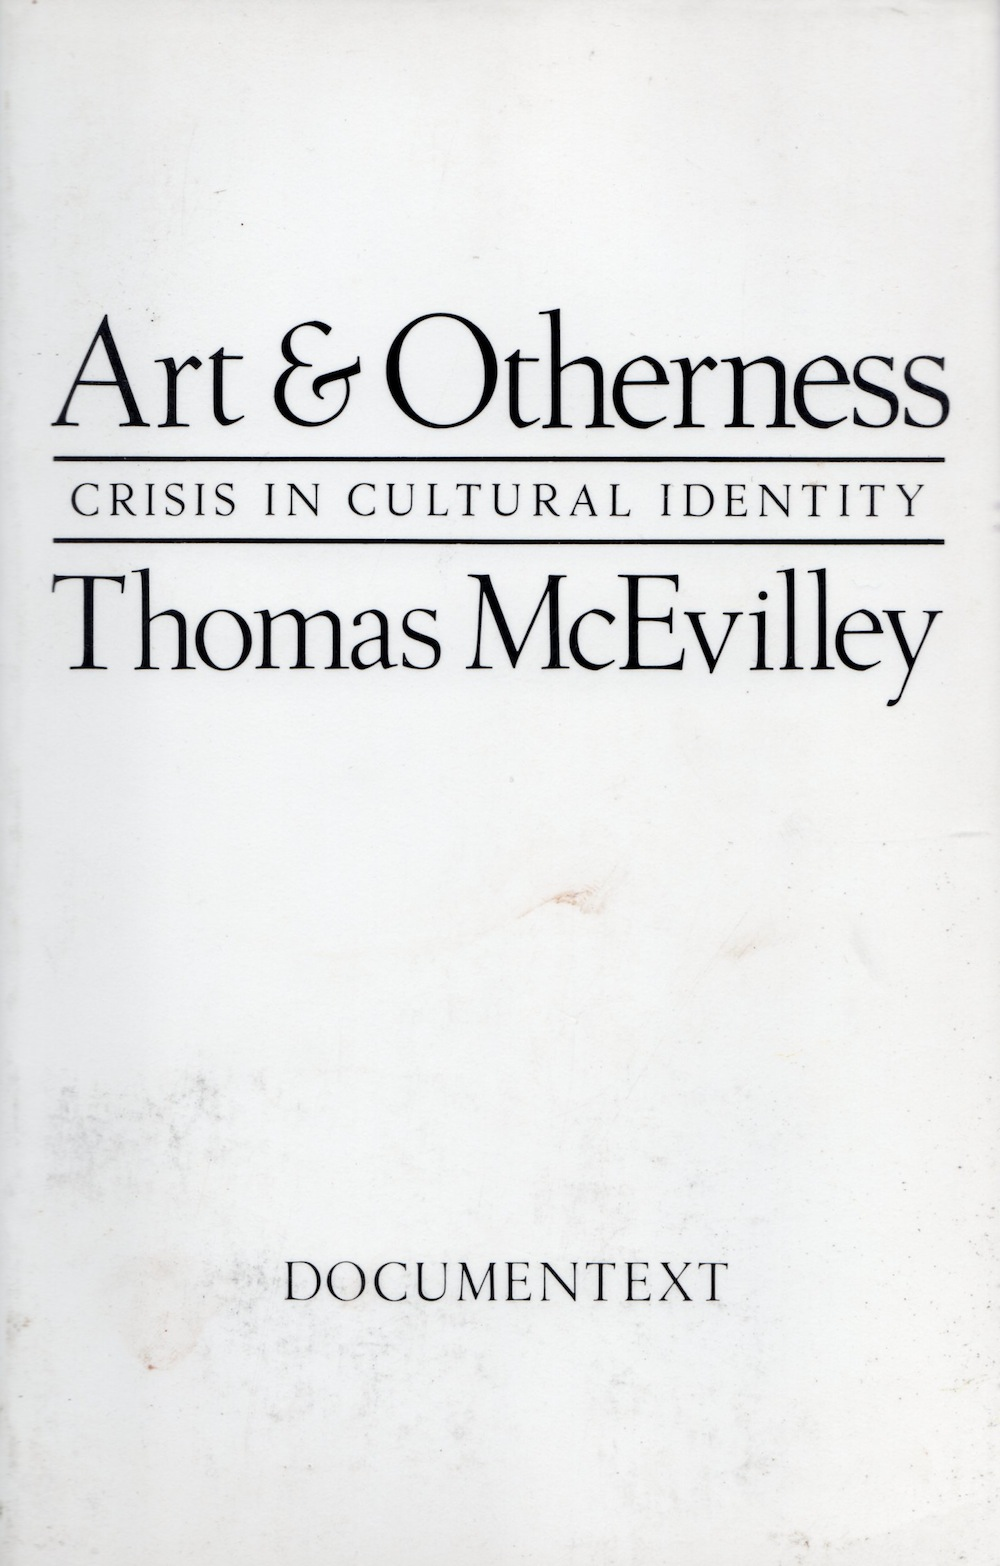 is multiculturalism dead? essay Multiculturalism essay  and questions of the meaning of multiculturalism in this essay i provide a  critique of keating's teaching methods in dead poets.